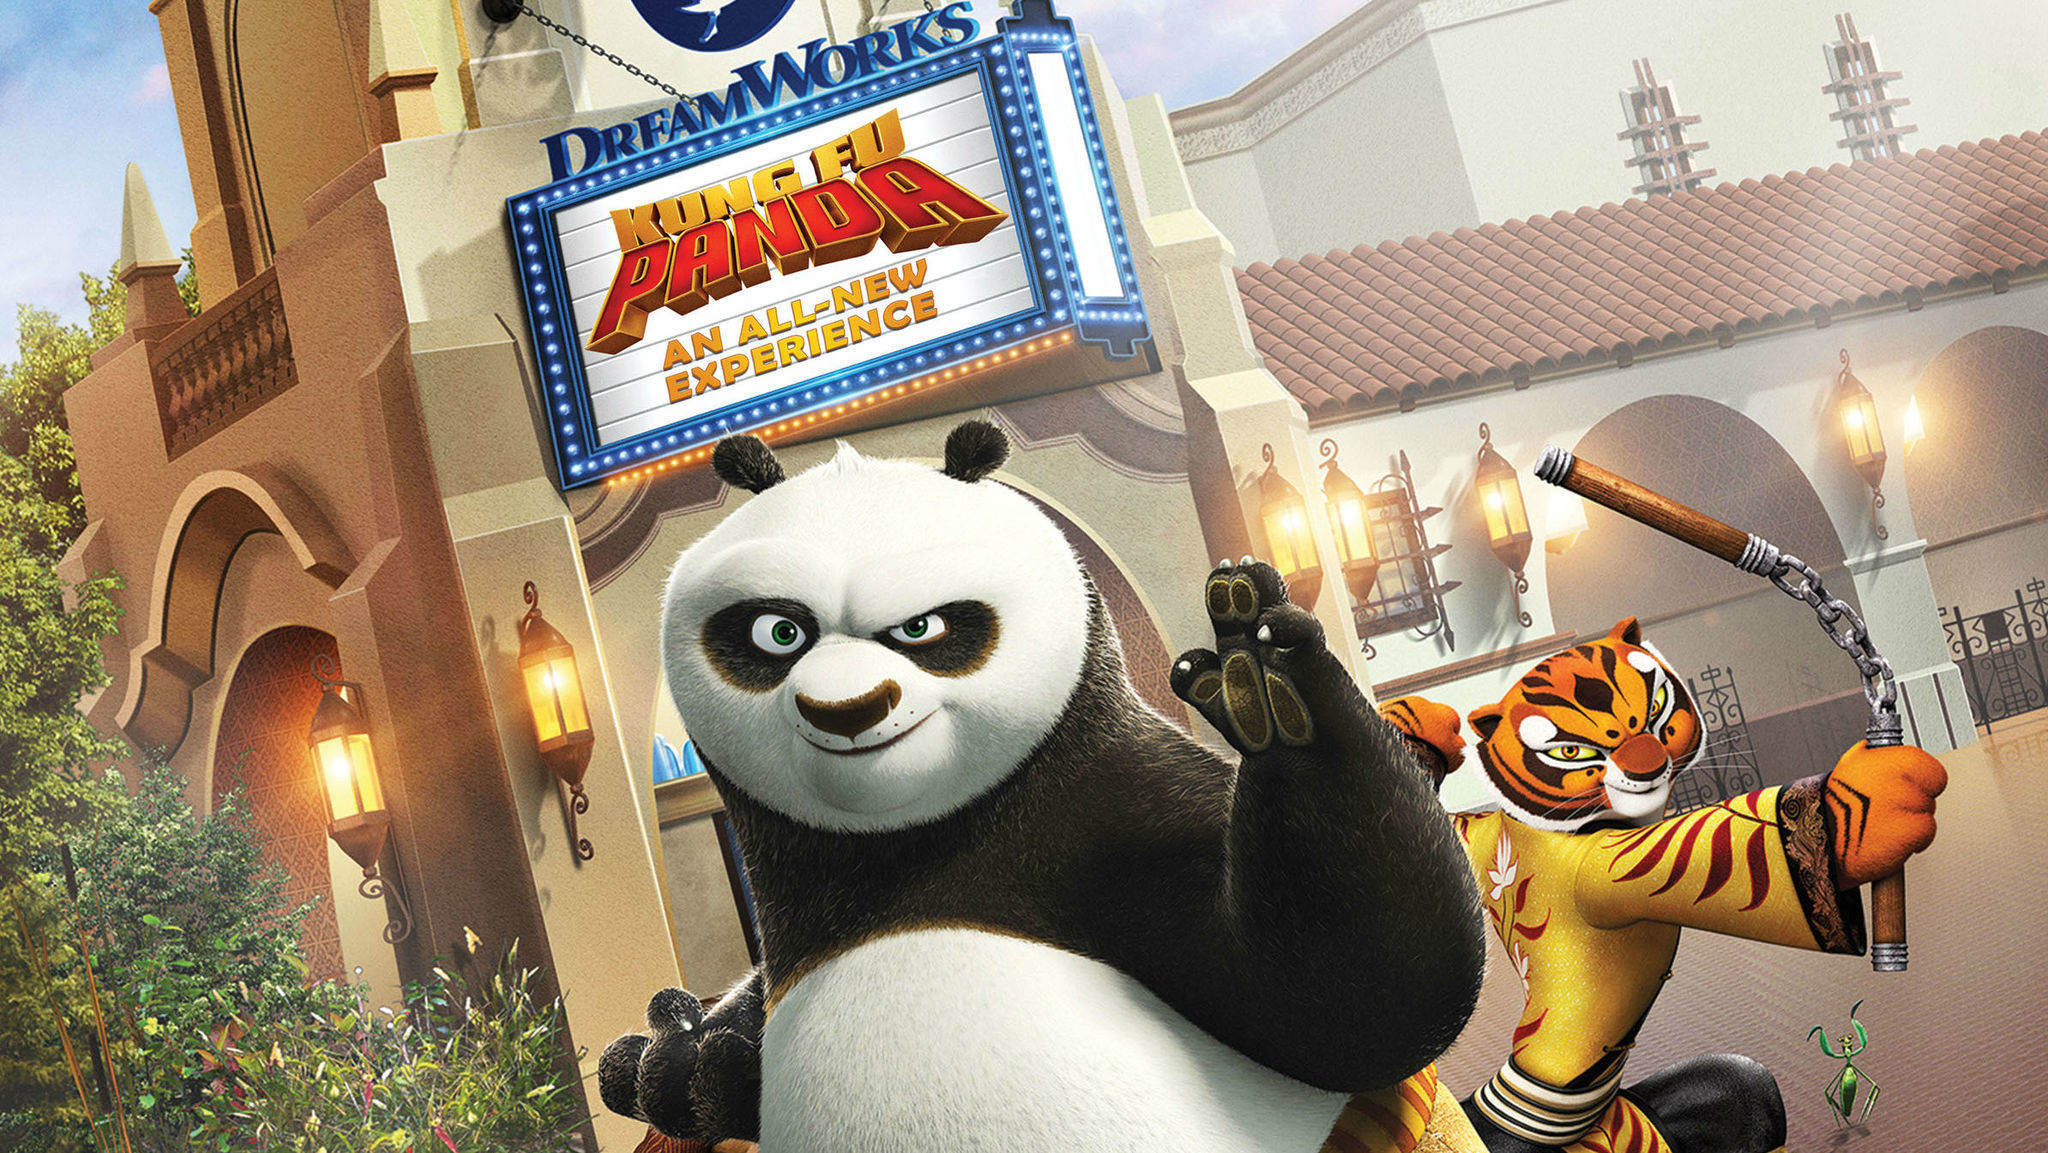 Dreamworks Theatre attraction details announced